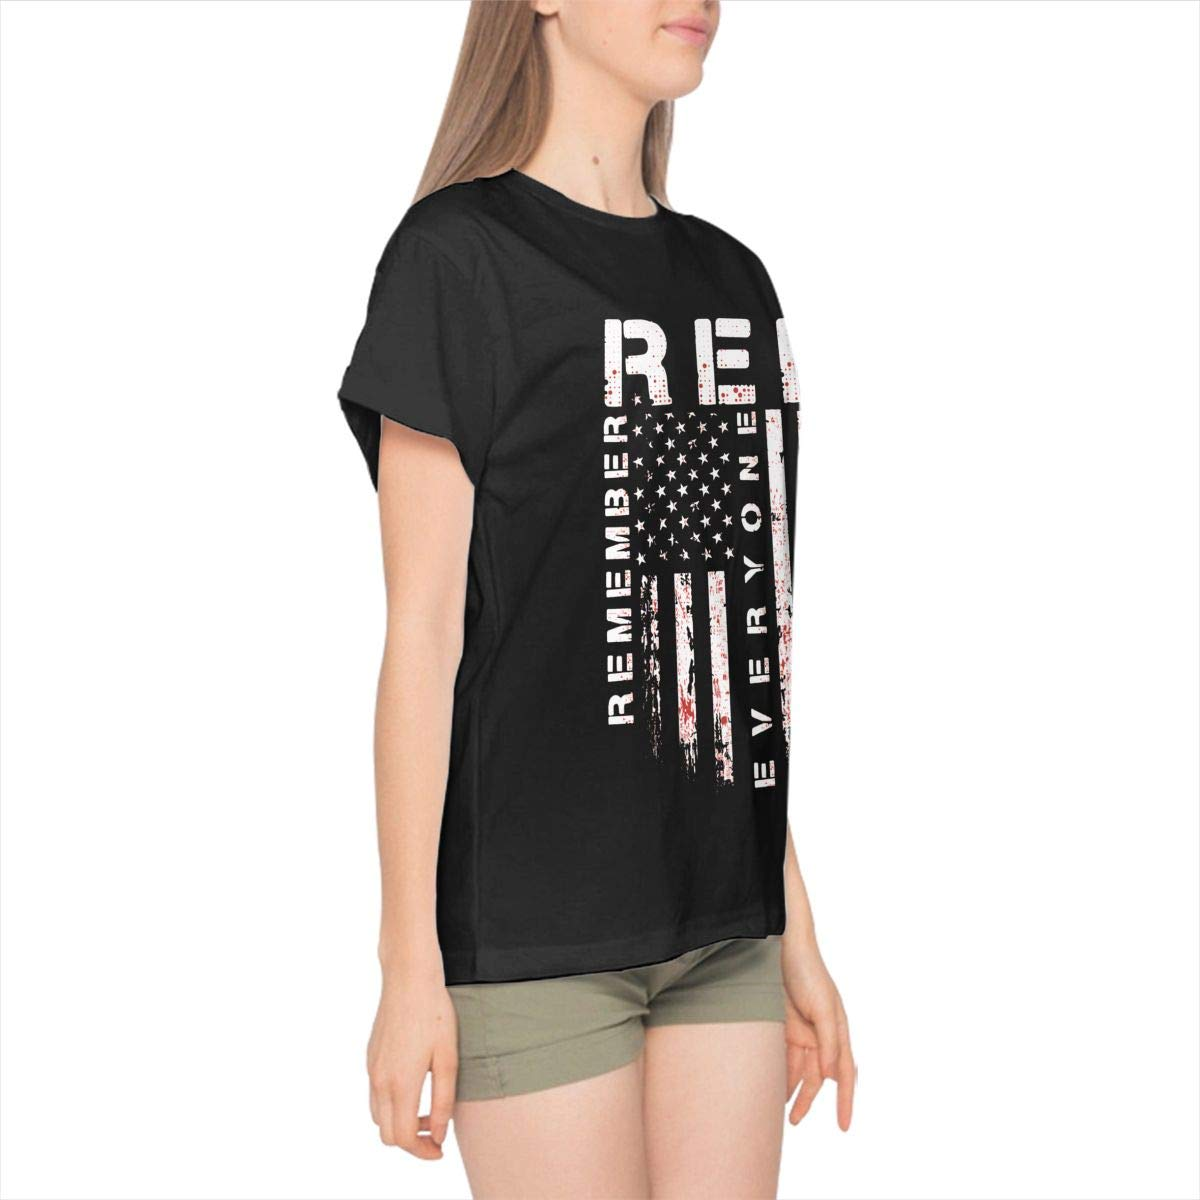 DANIELBURTON Black R.E.D Remember Everyone Deployed Shirts Fashion Custom for Women